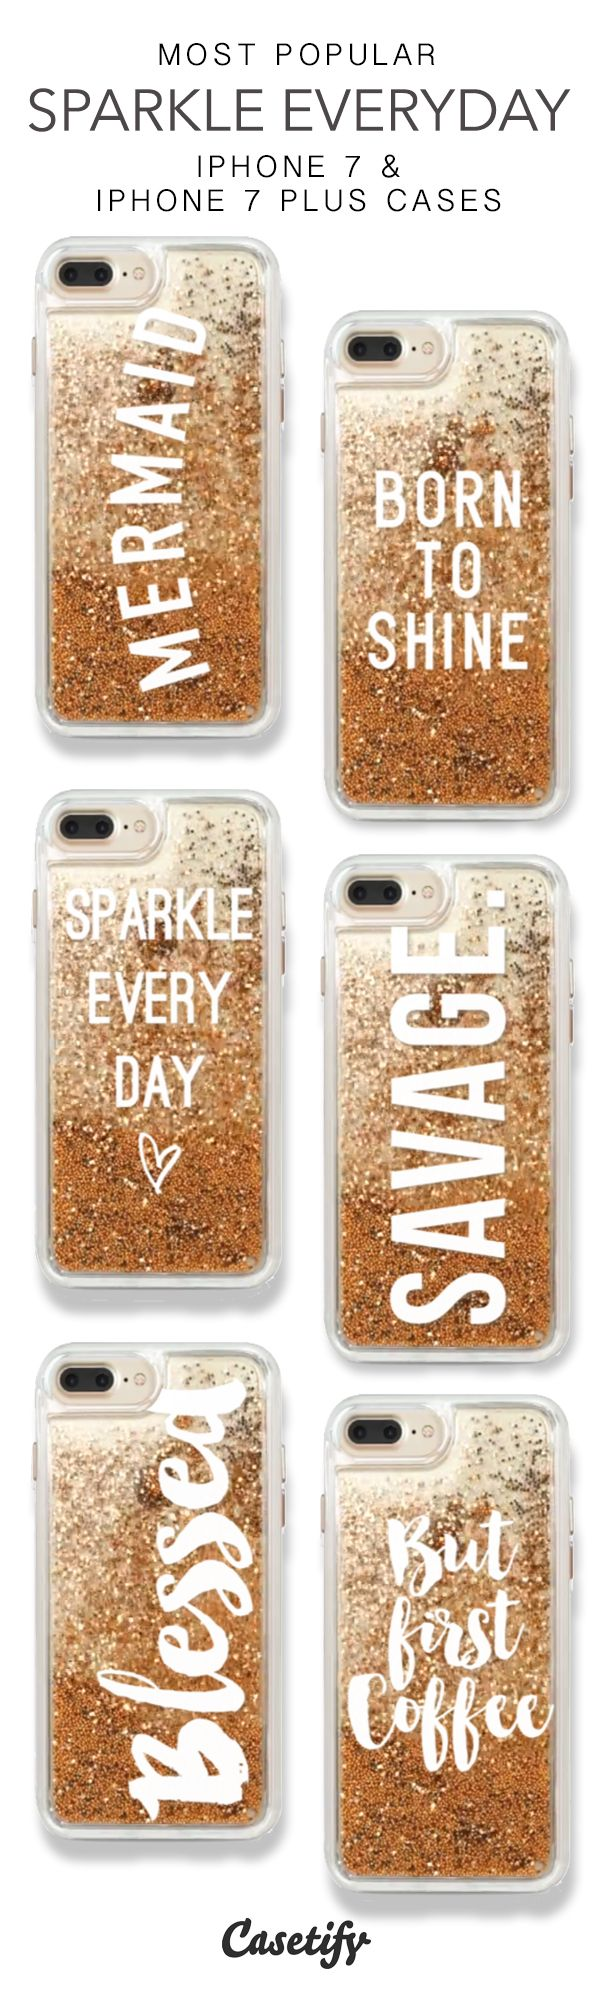 Phone Cases - Most Popular Sparkle Everyday iPhone 7 Cases  amp  iPhone 7  Plus… e393ae7729